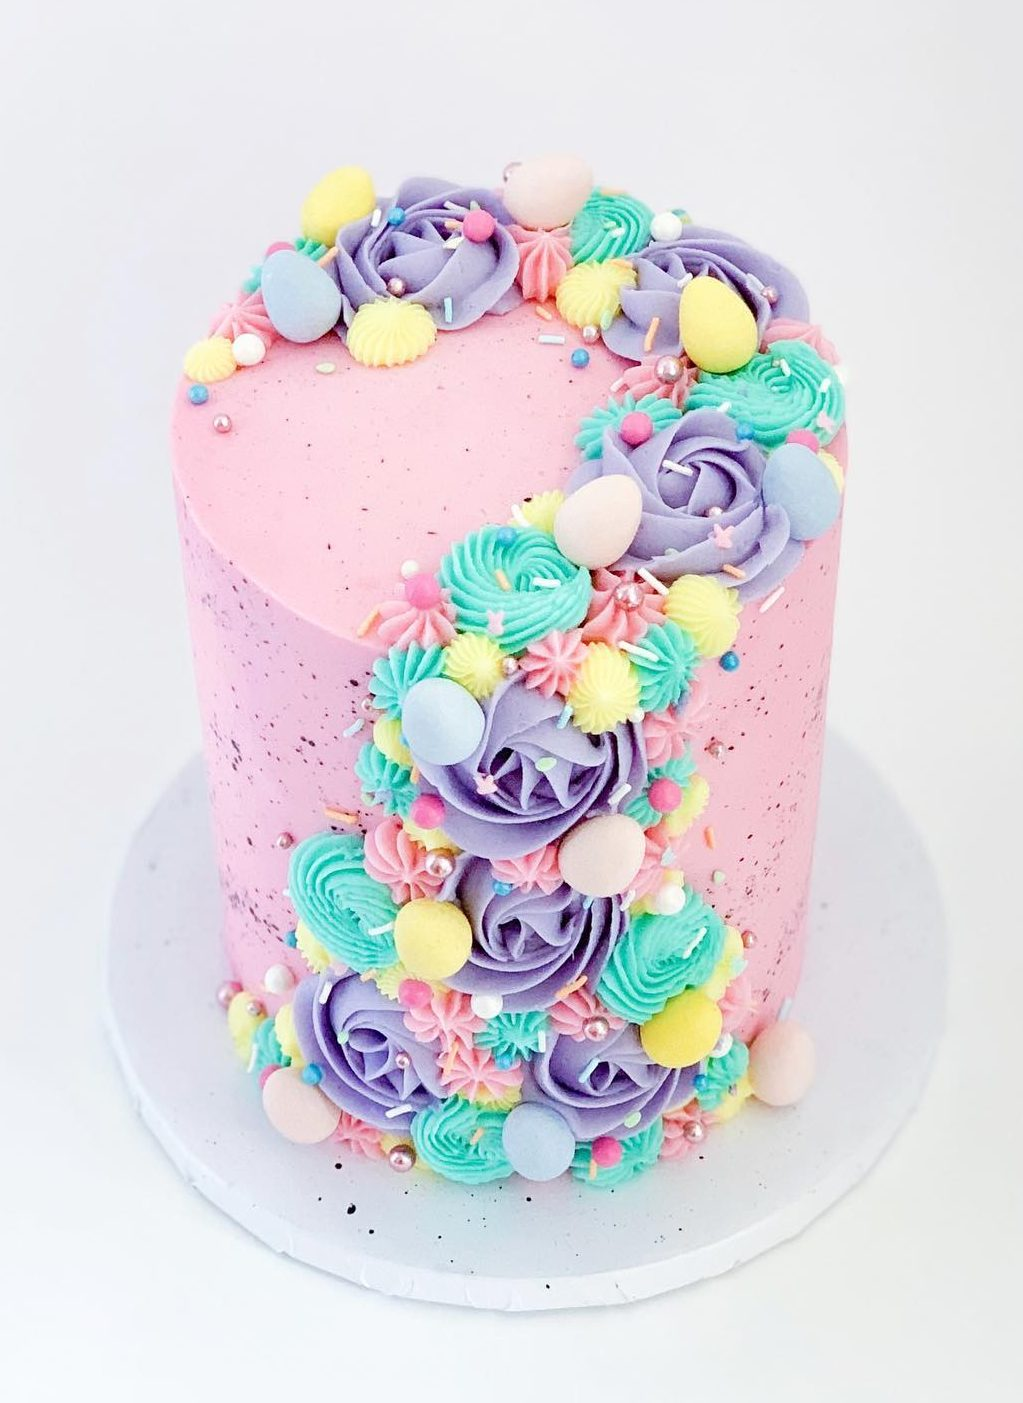 Colorful and Pink Easter Pastel Cake With Meringue